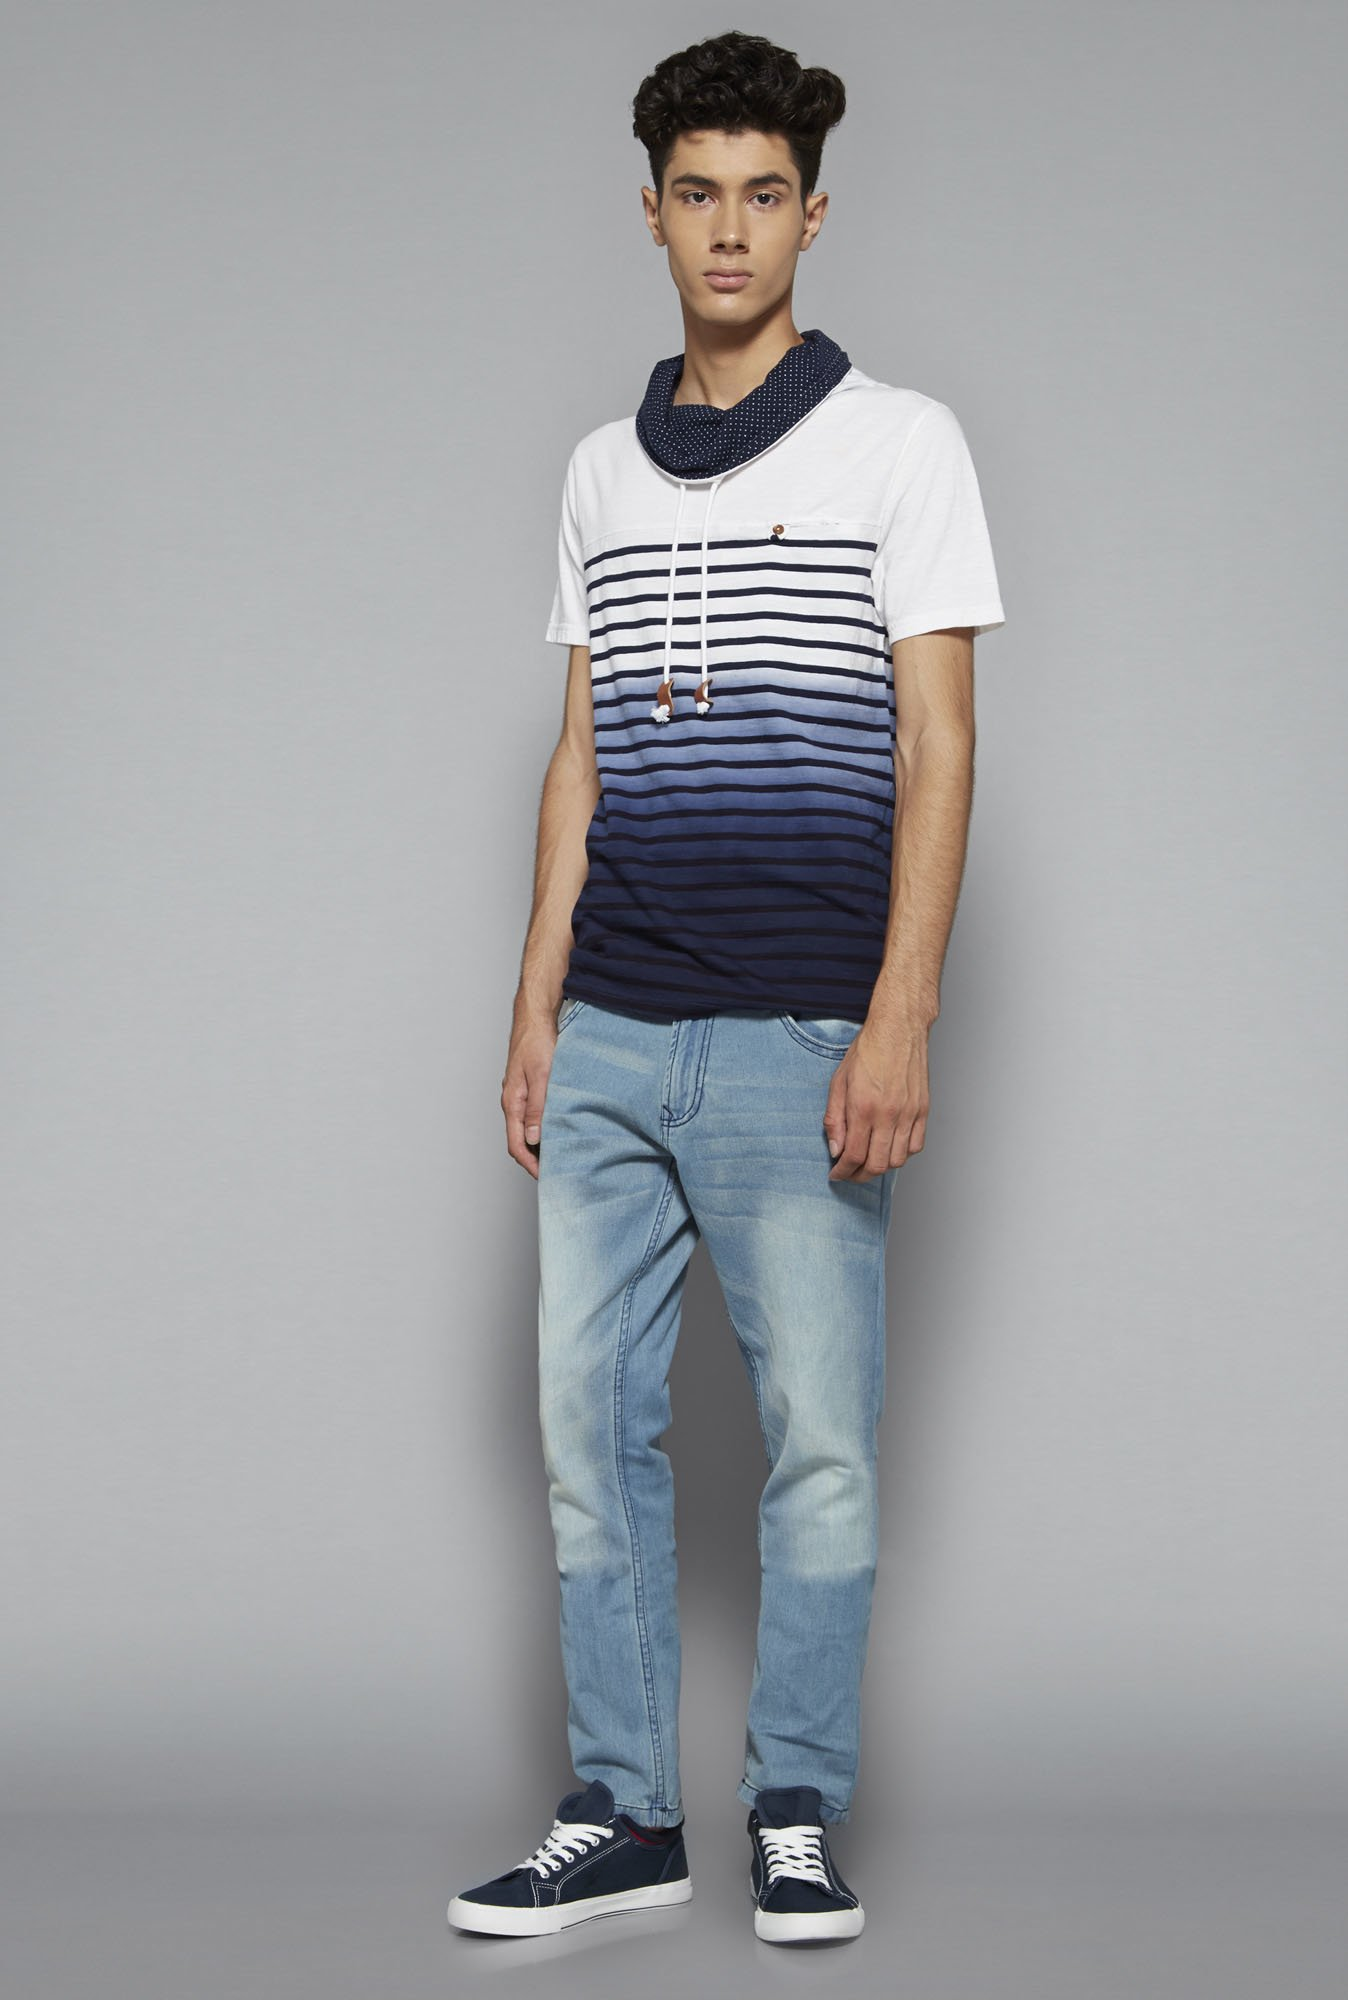 Nuon by Westside Navy Slim Fit T Shirt